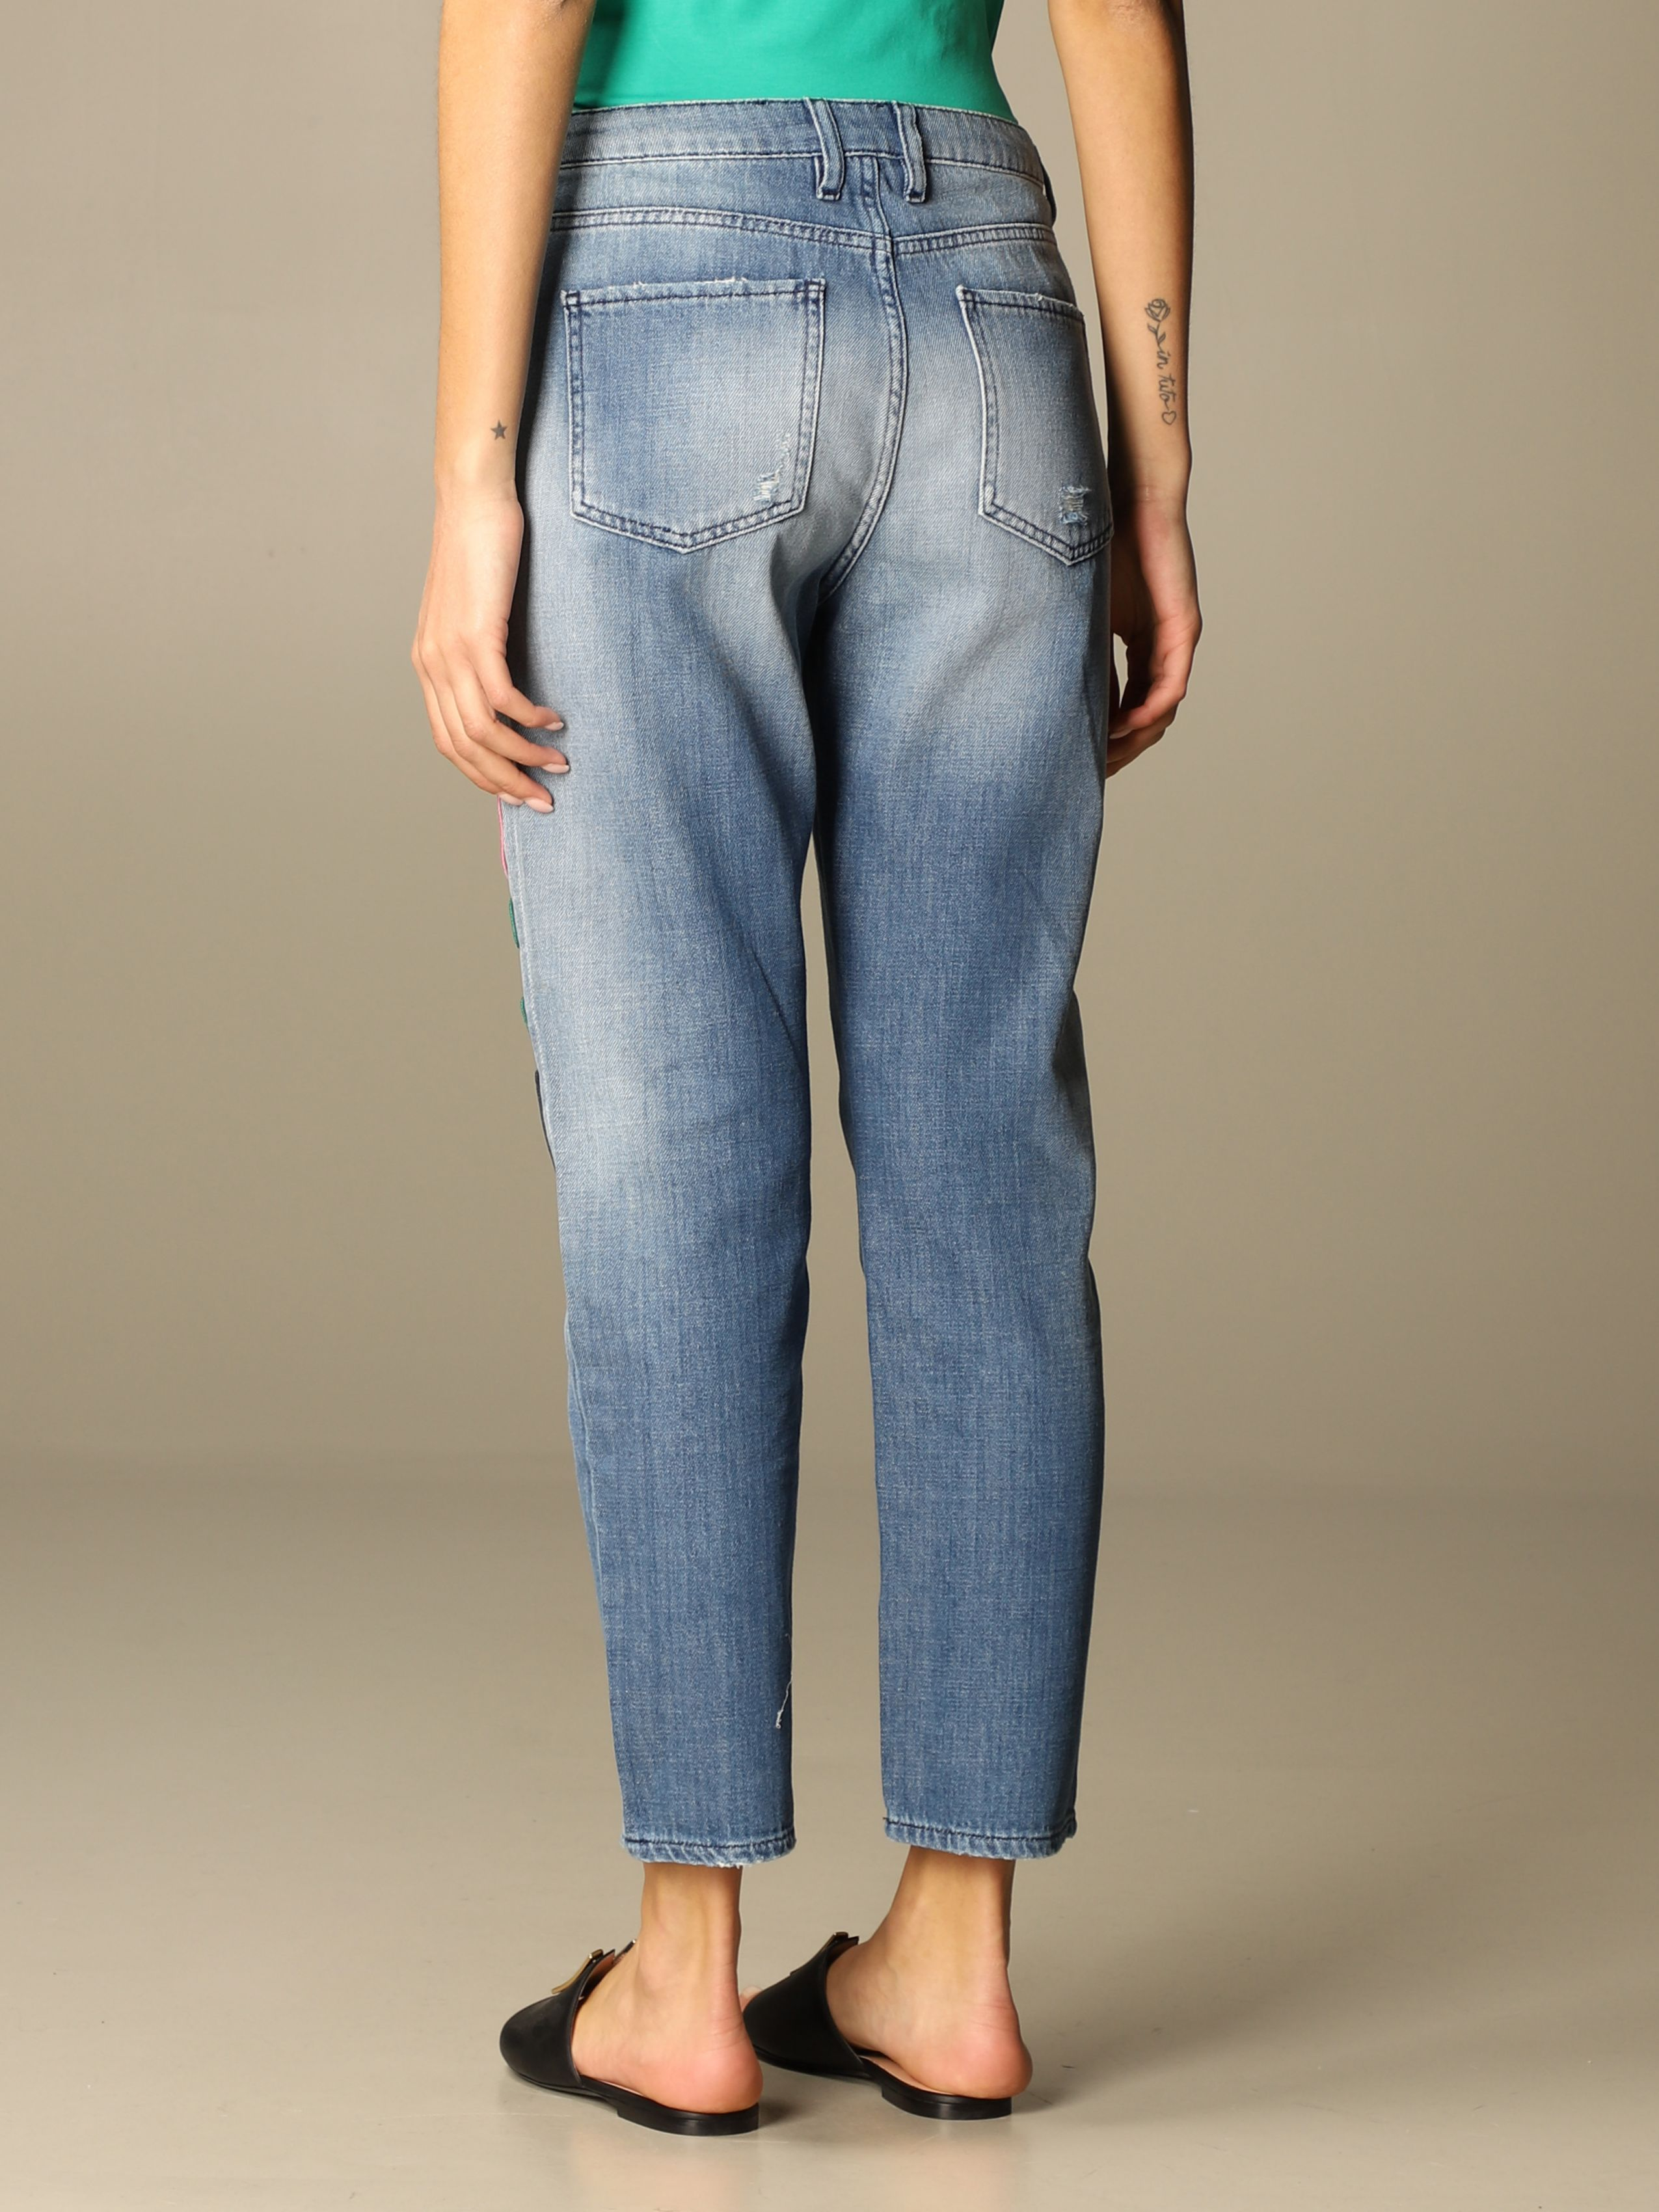 LOVE MOSCHINO   Jeans   WQ381 8S T085A405W